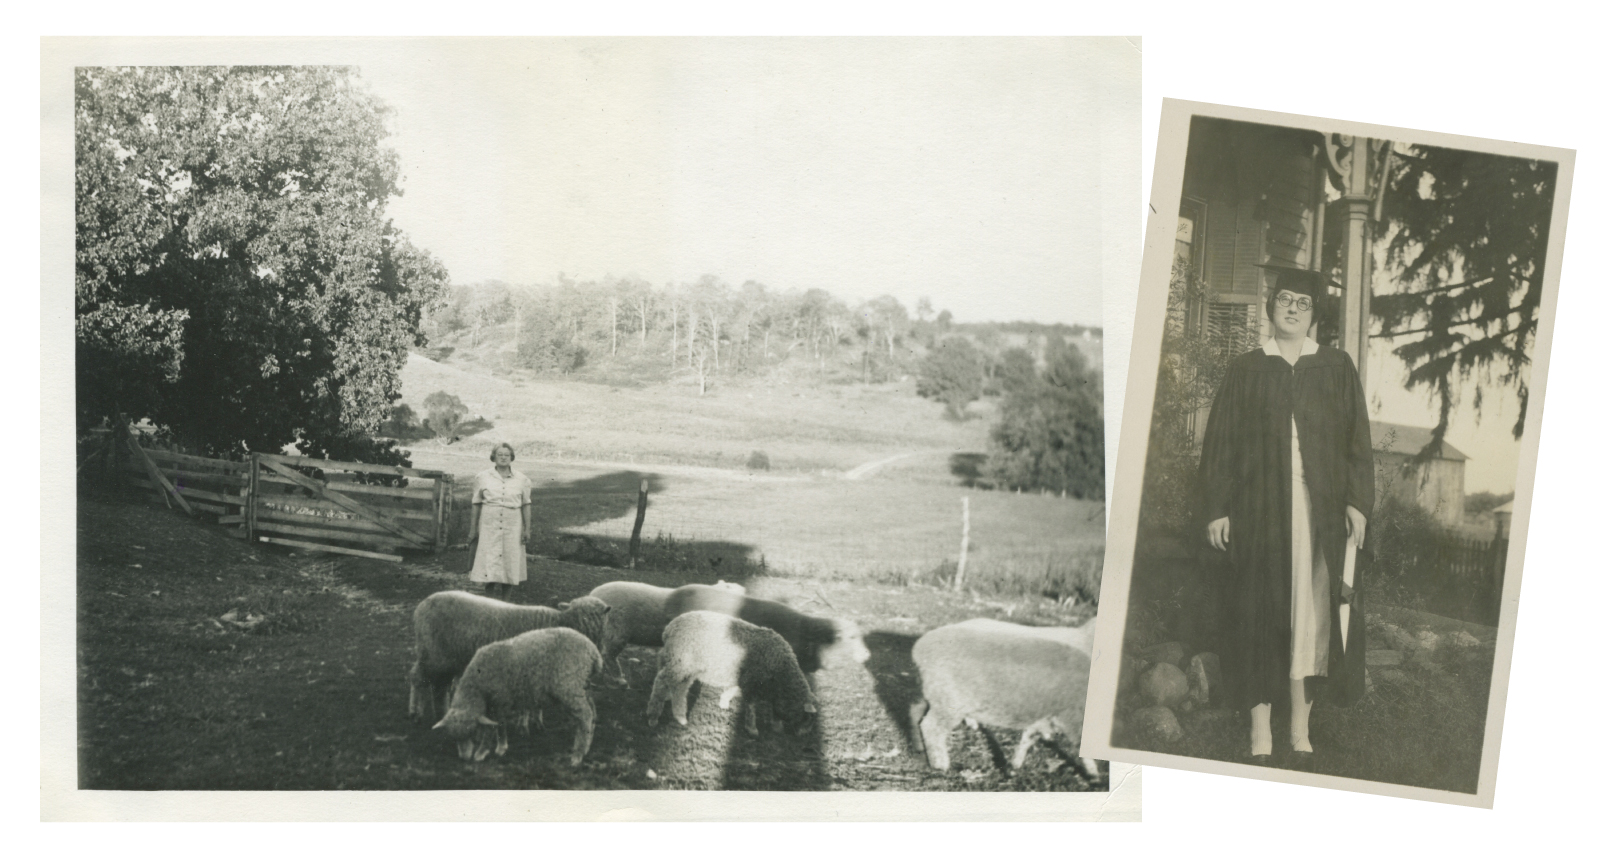 Lessons on the Land: Anna Hobart looks after the sheep on the farm, just a few of the animals that called the place home (left). Dorothy Hobart on her Denison graduation day in 1925 (right).